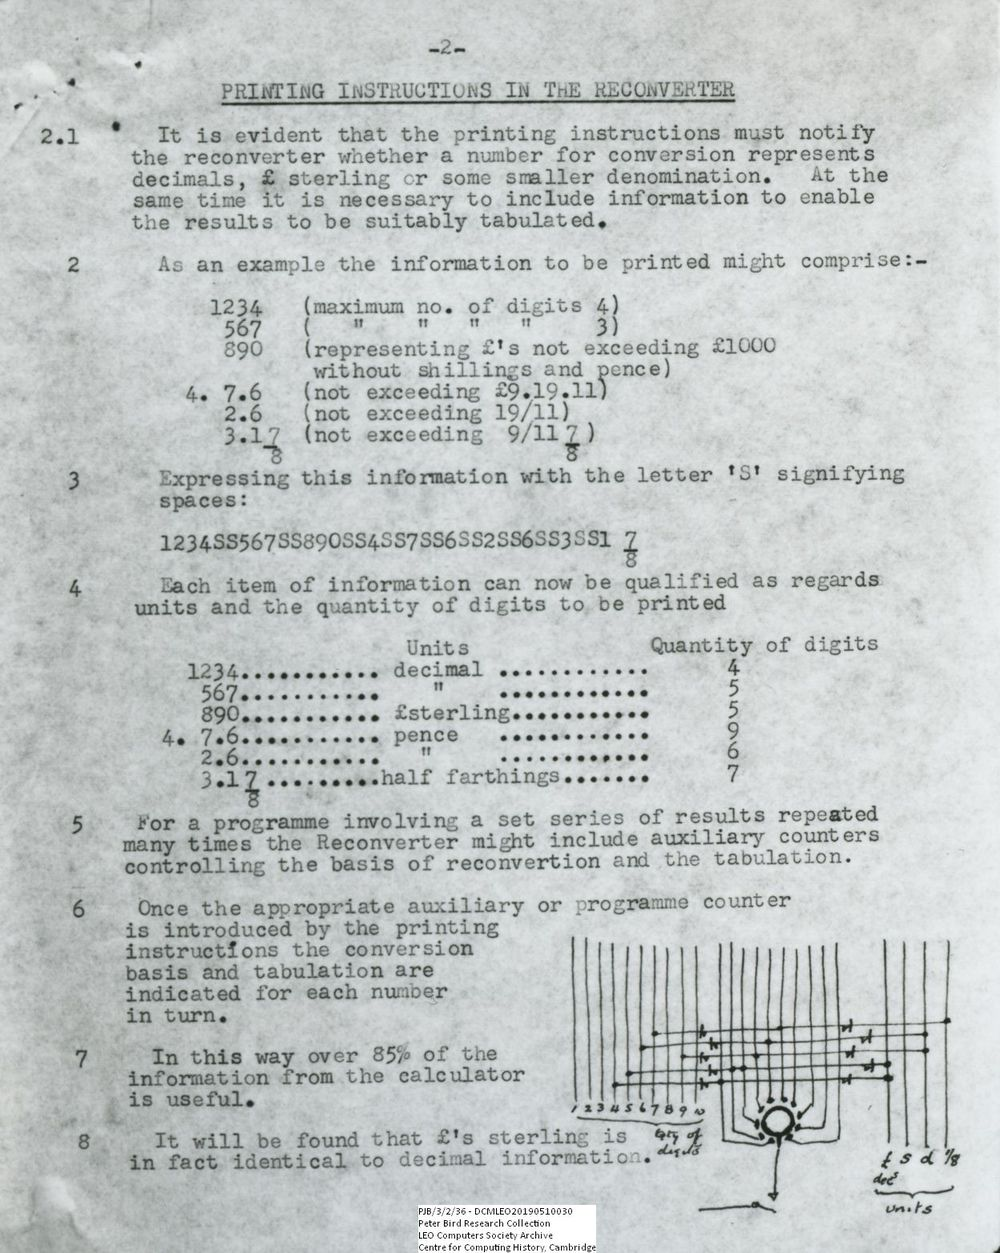 Scan of Document: 60593 Printing Instructions in the Reconverter, LEO I